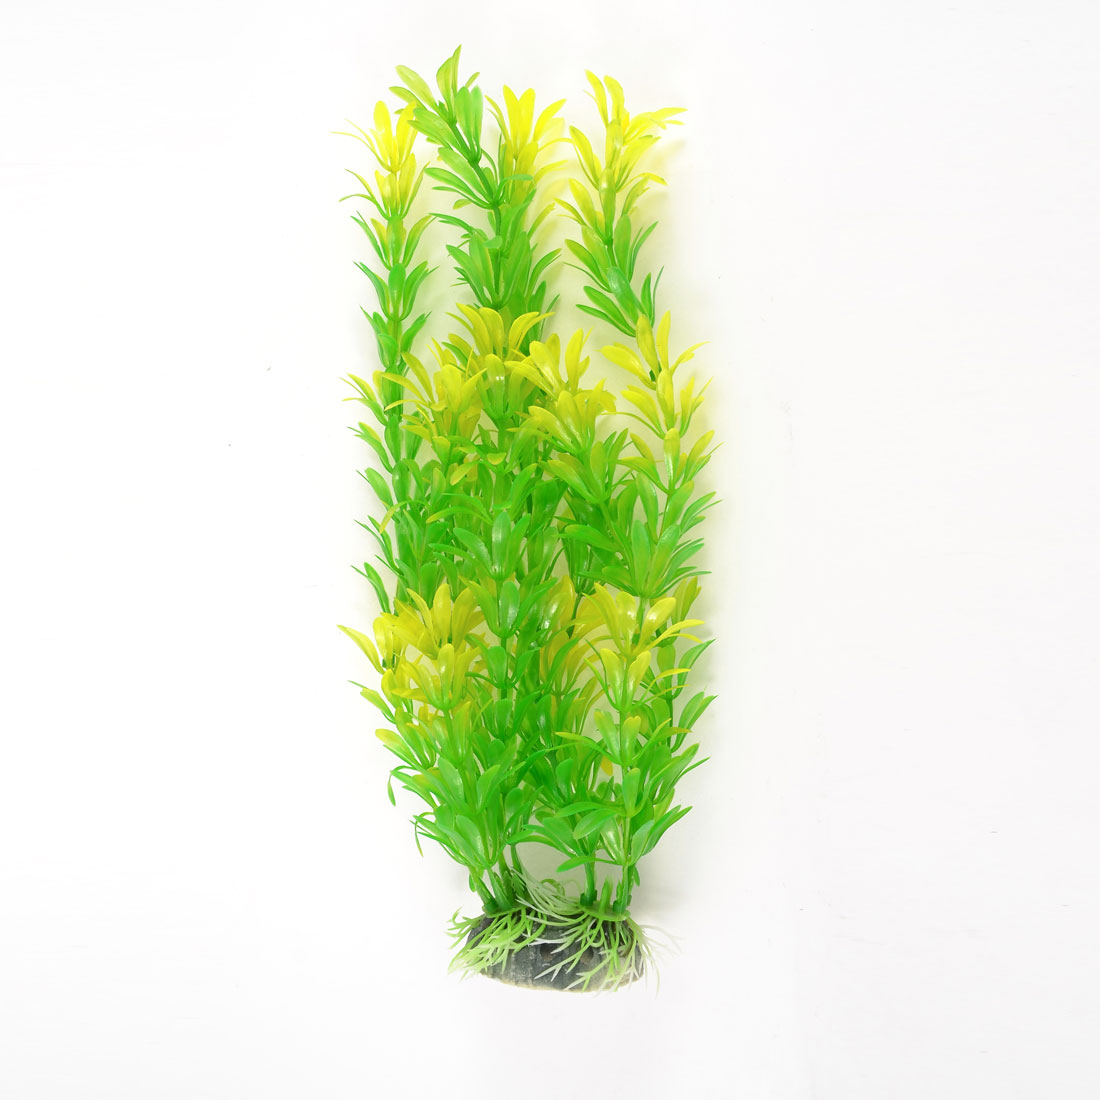 Aquarium Aquascaping Artificial Green Underwater Plant Grass Decoration